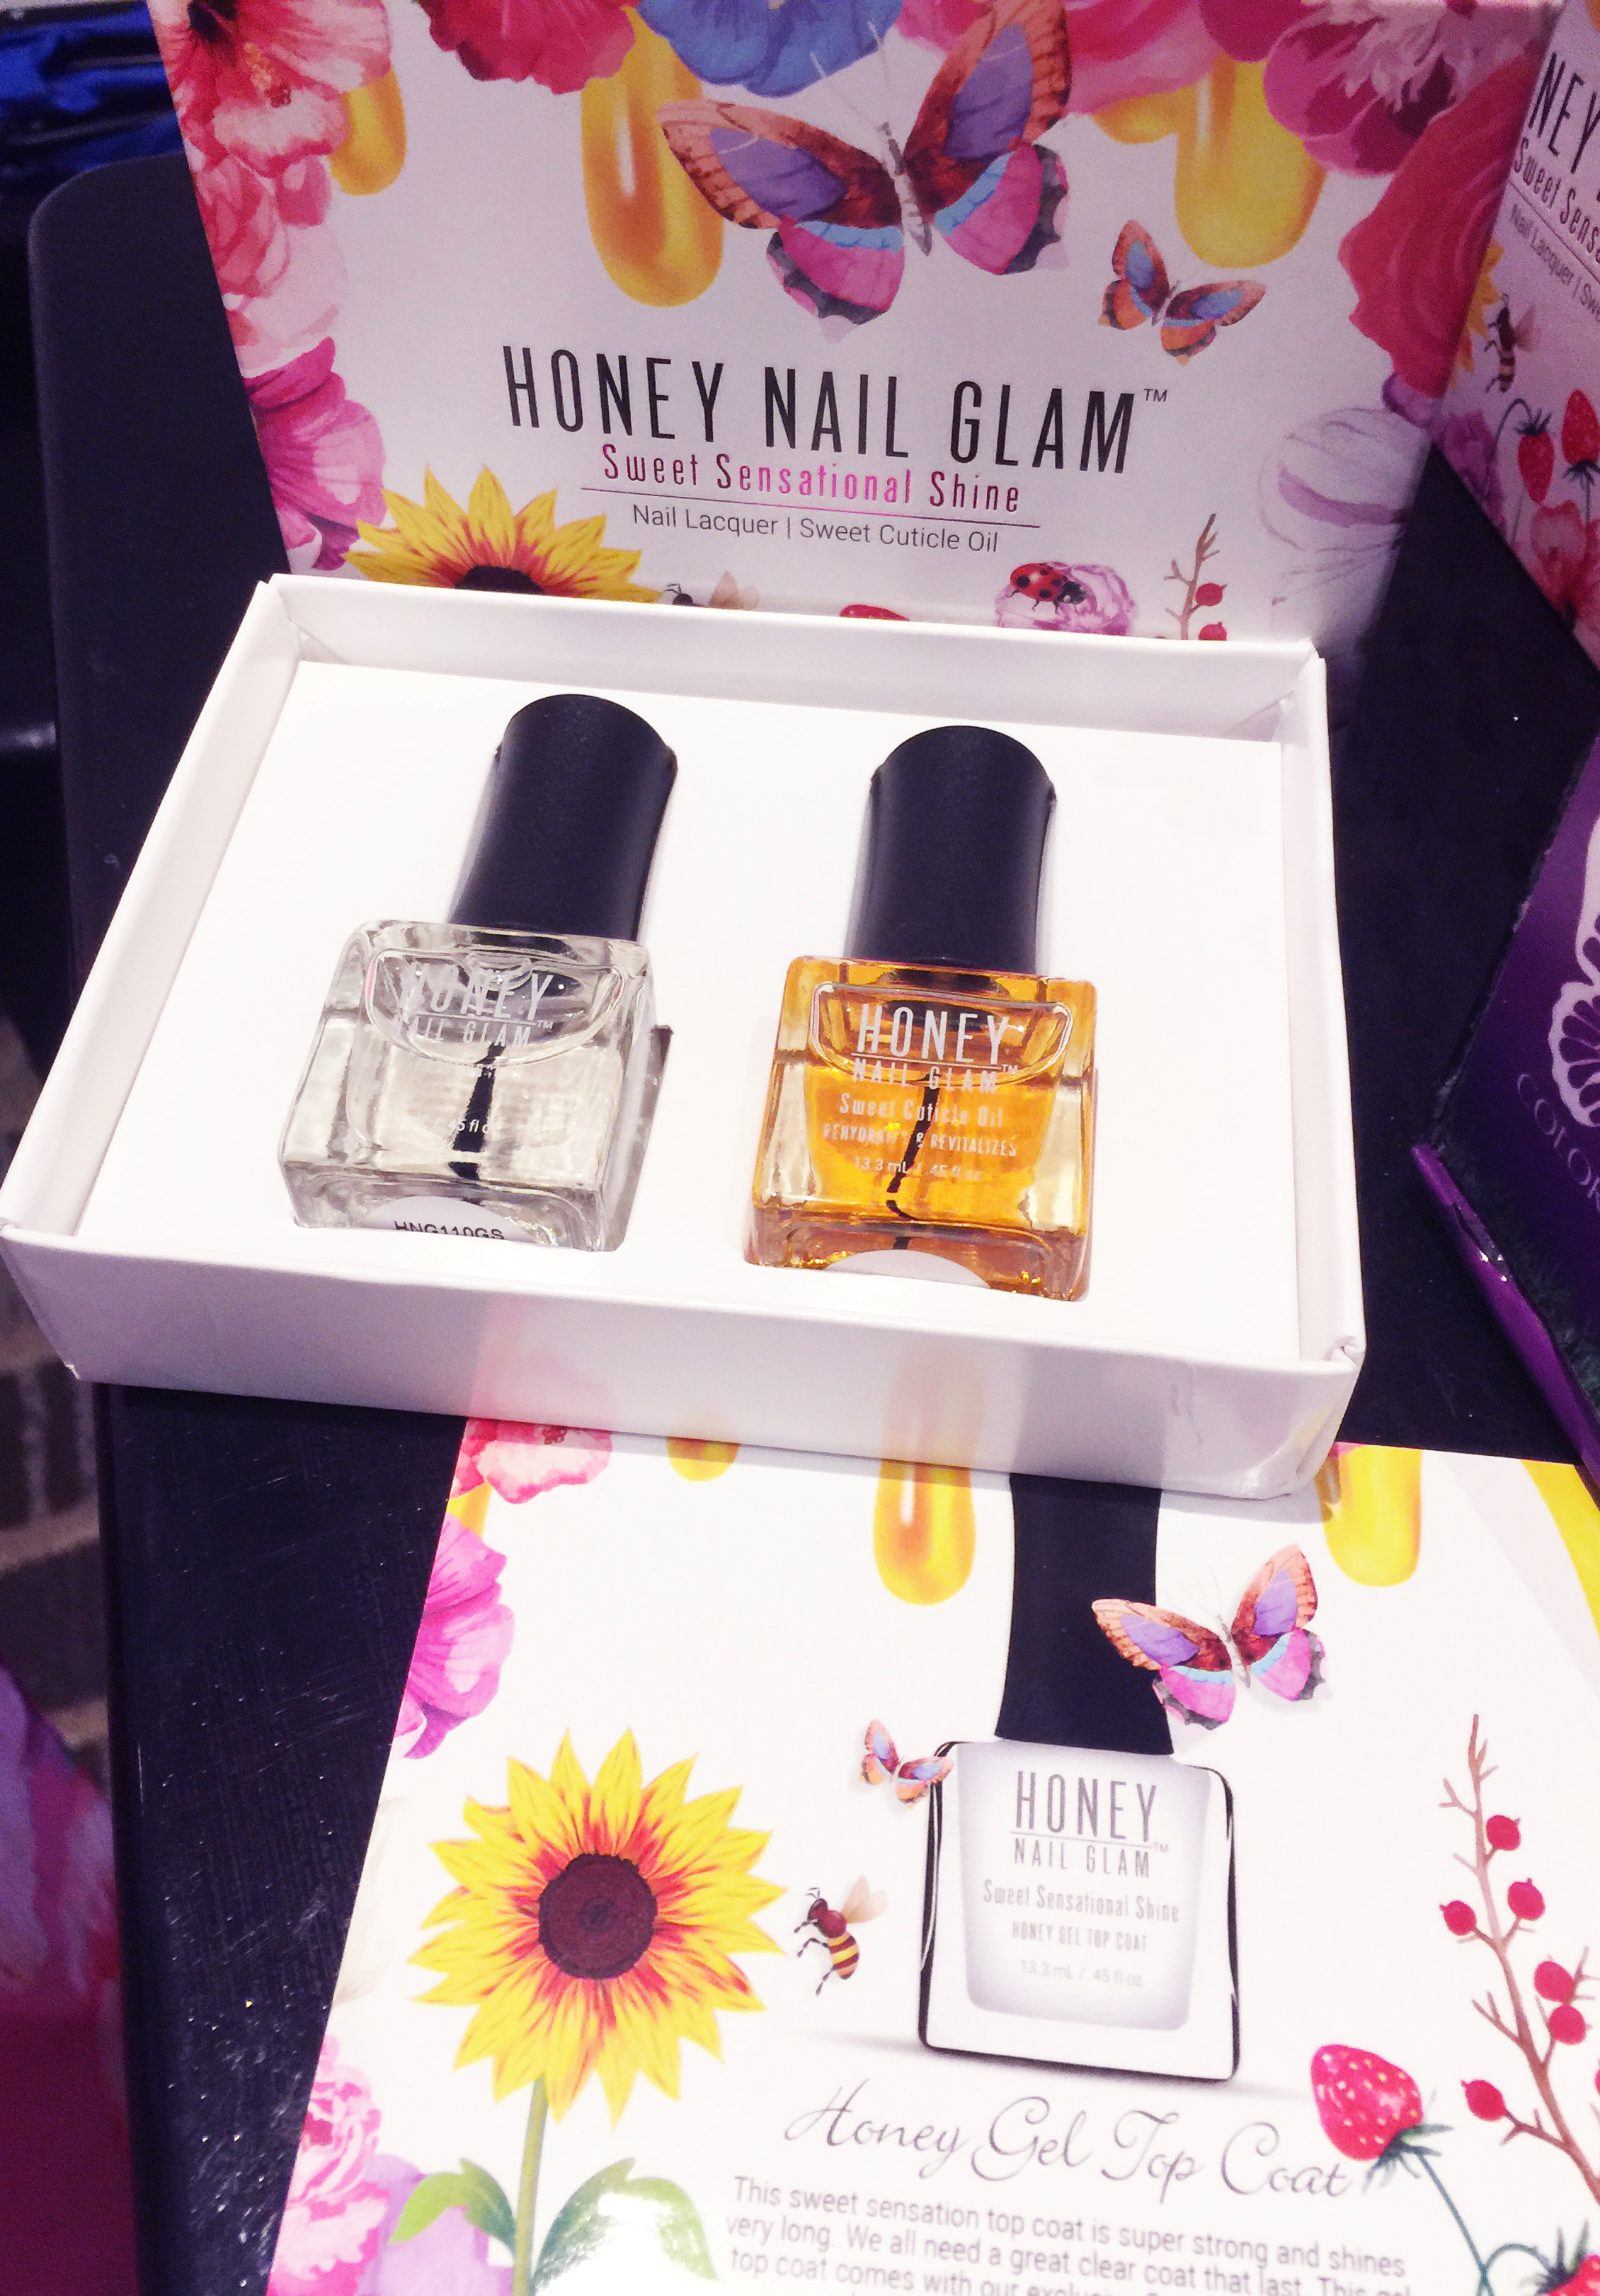 Honey gel box set photo